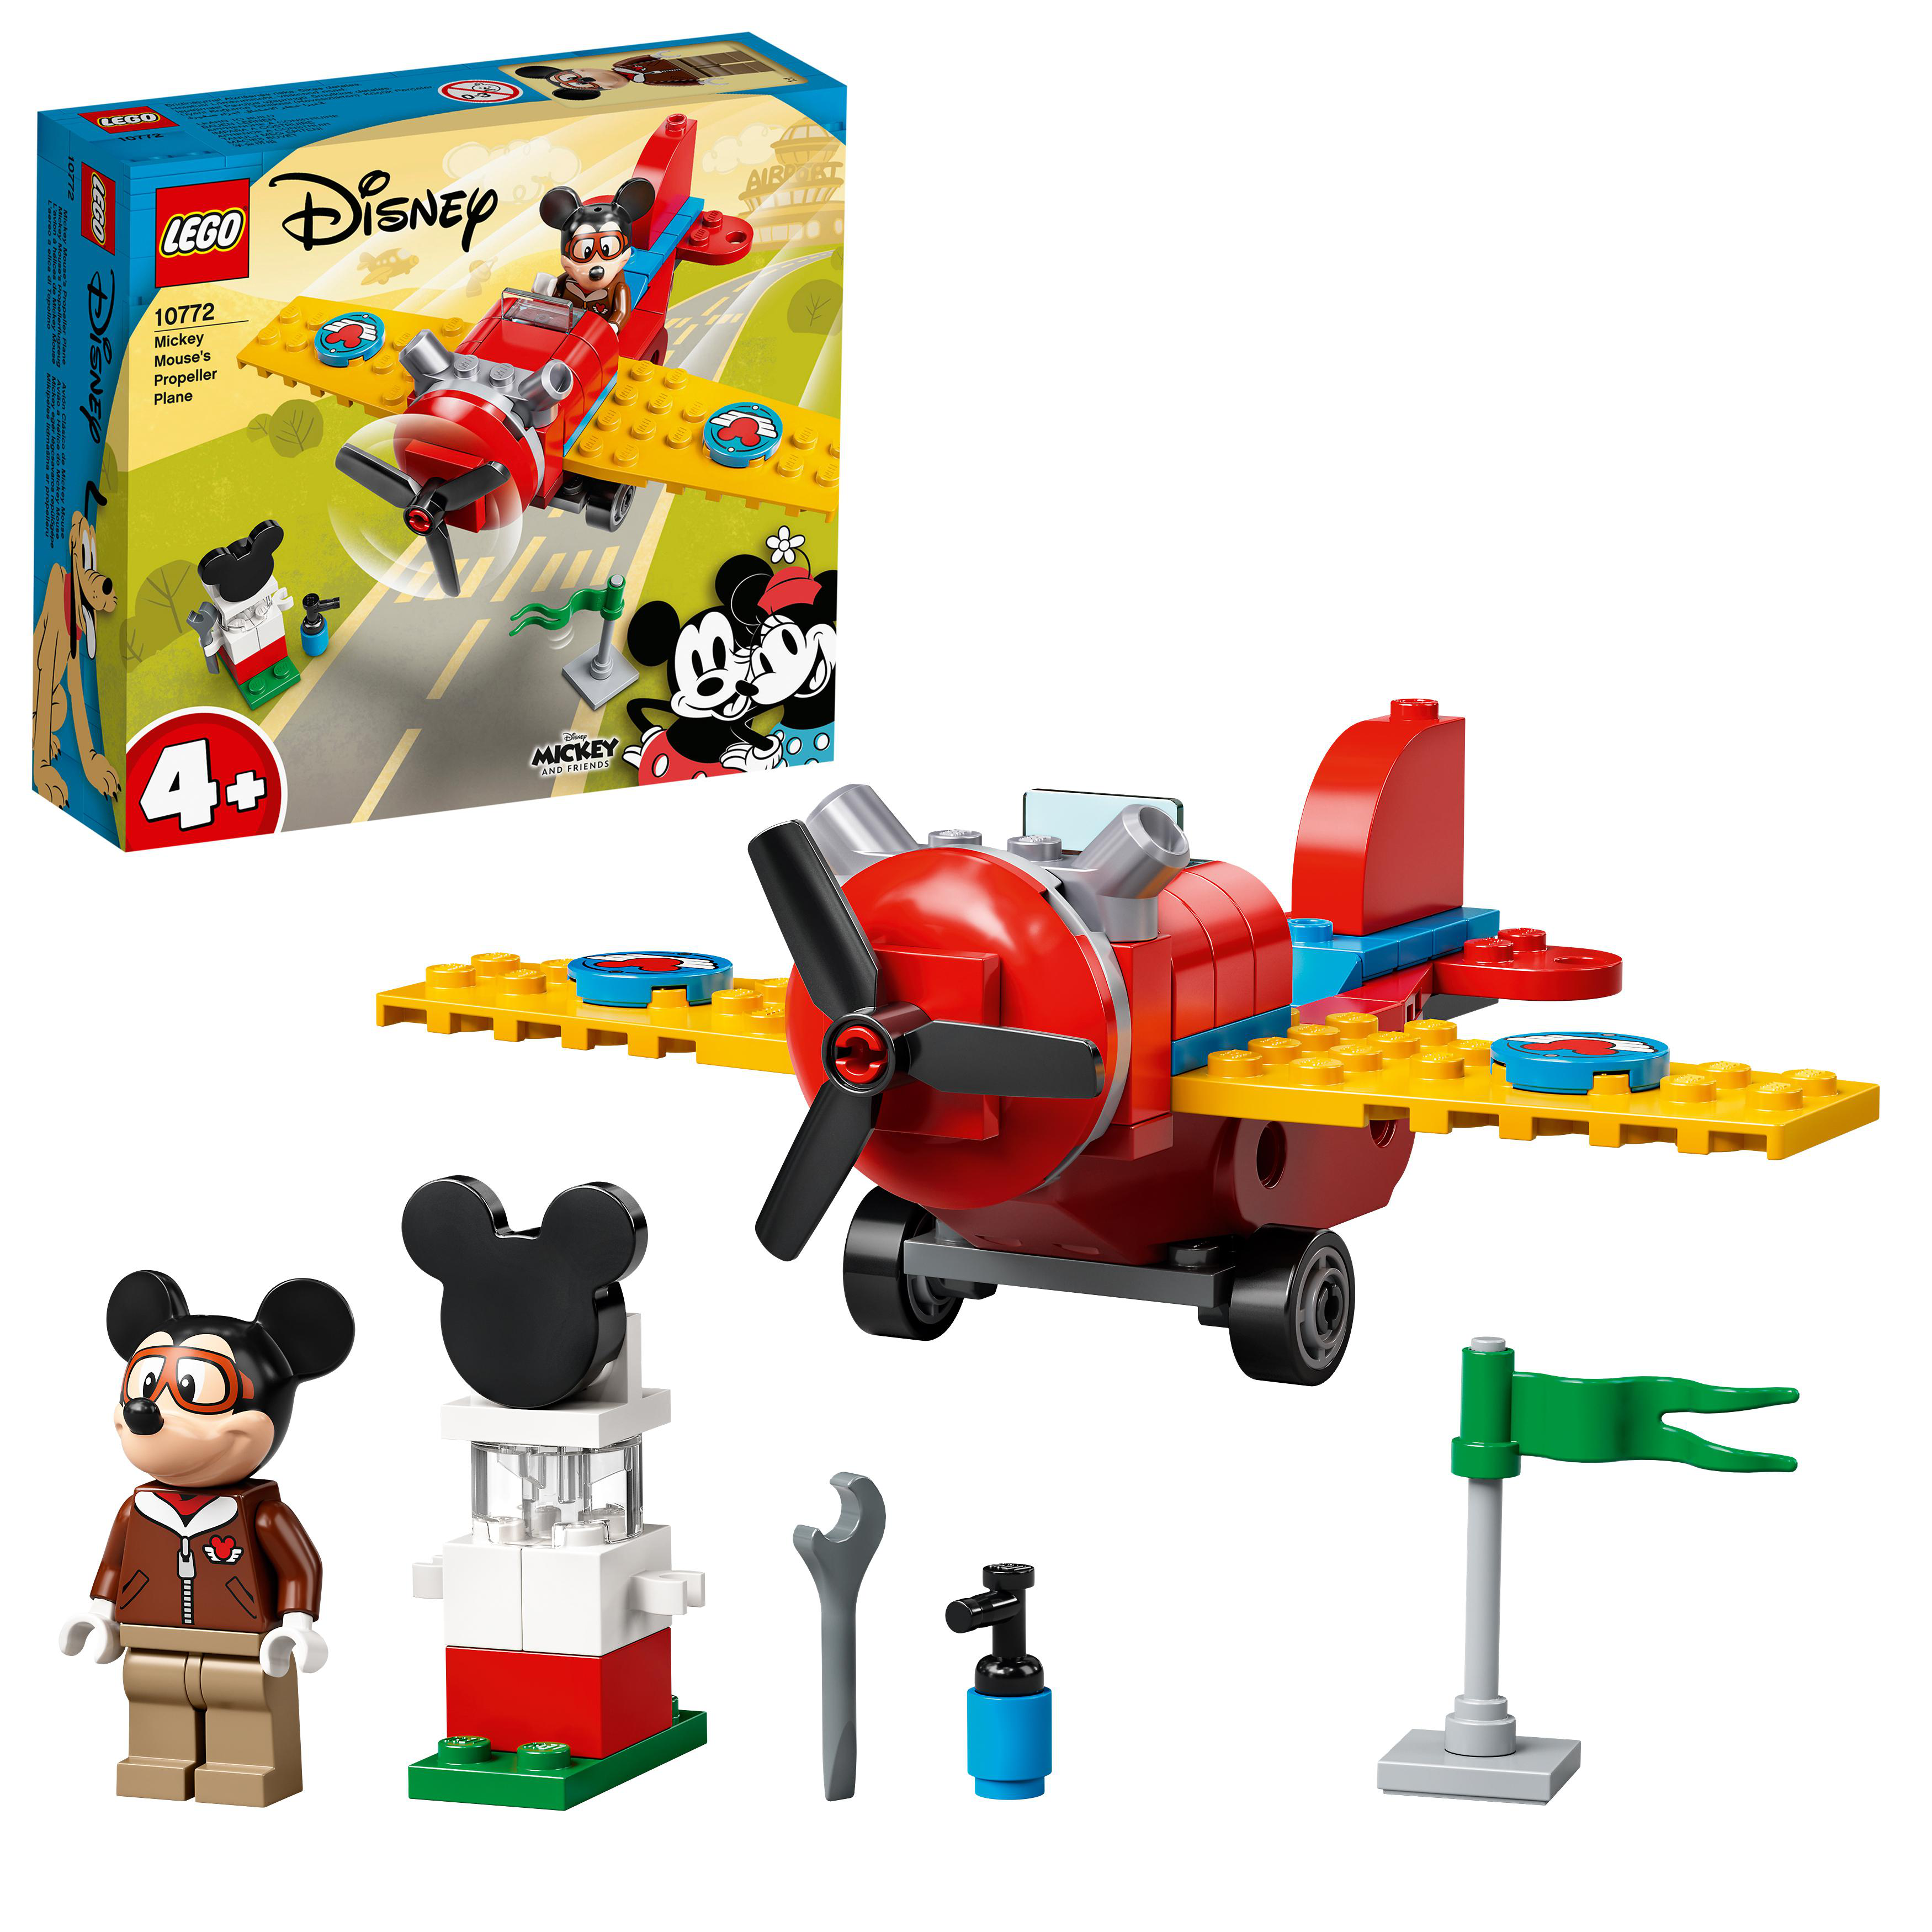 LEGO Mickey Mouse - Mickey Mouse's Propeller Plane (10772)